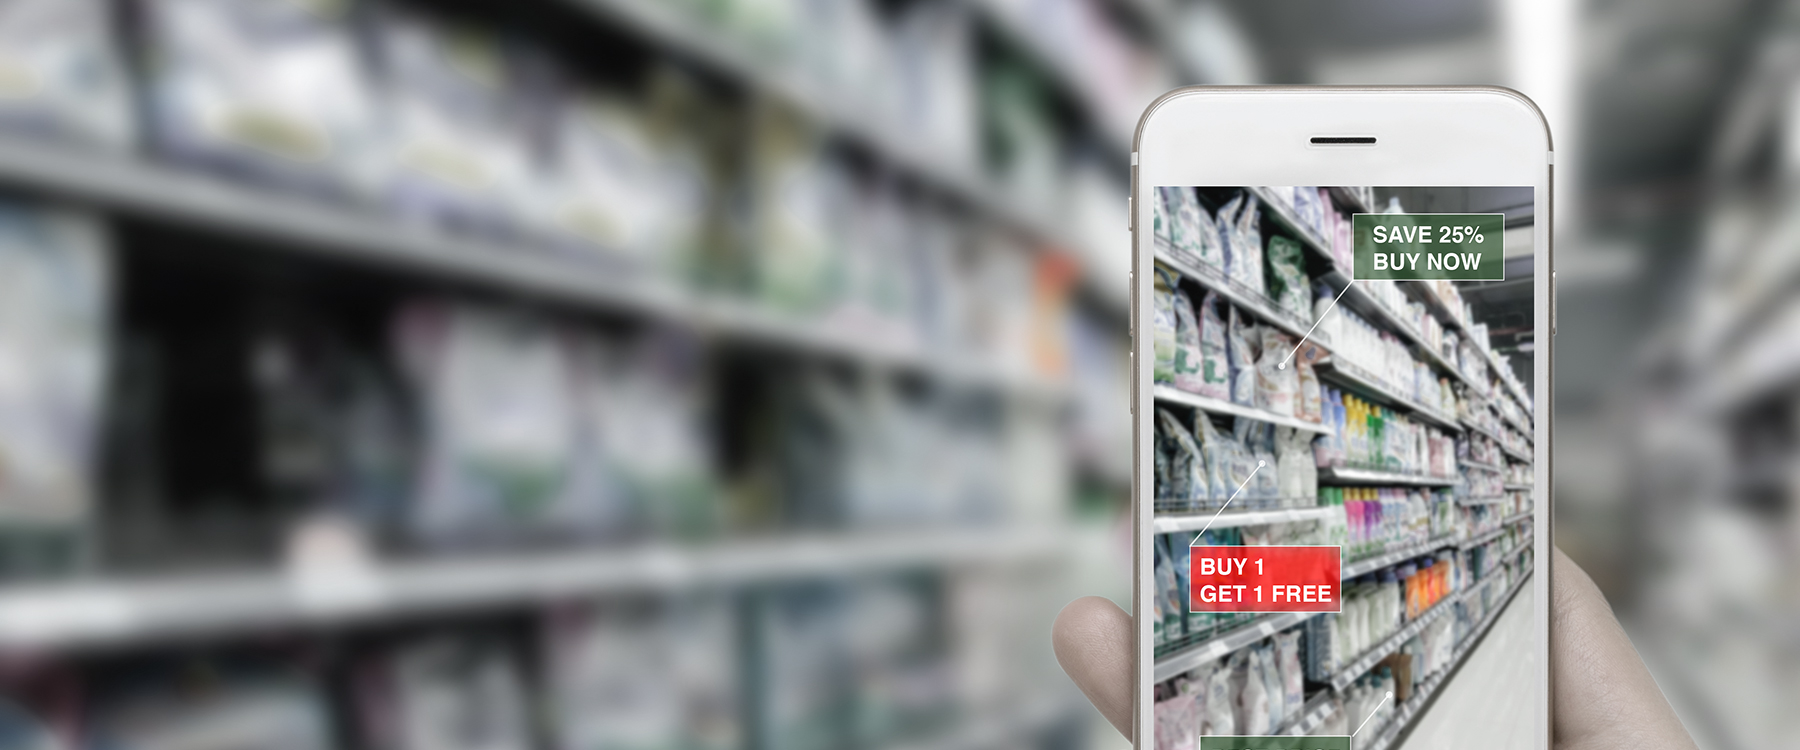 superior quality product data fuels superior quality retail outcomes - with product master data management for retail